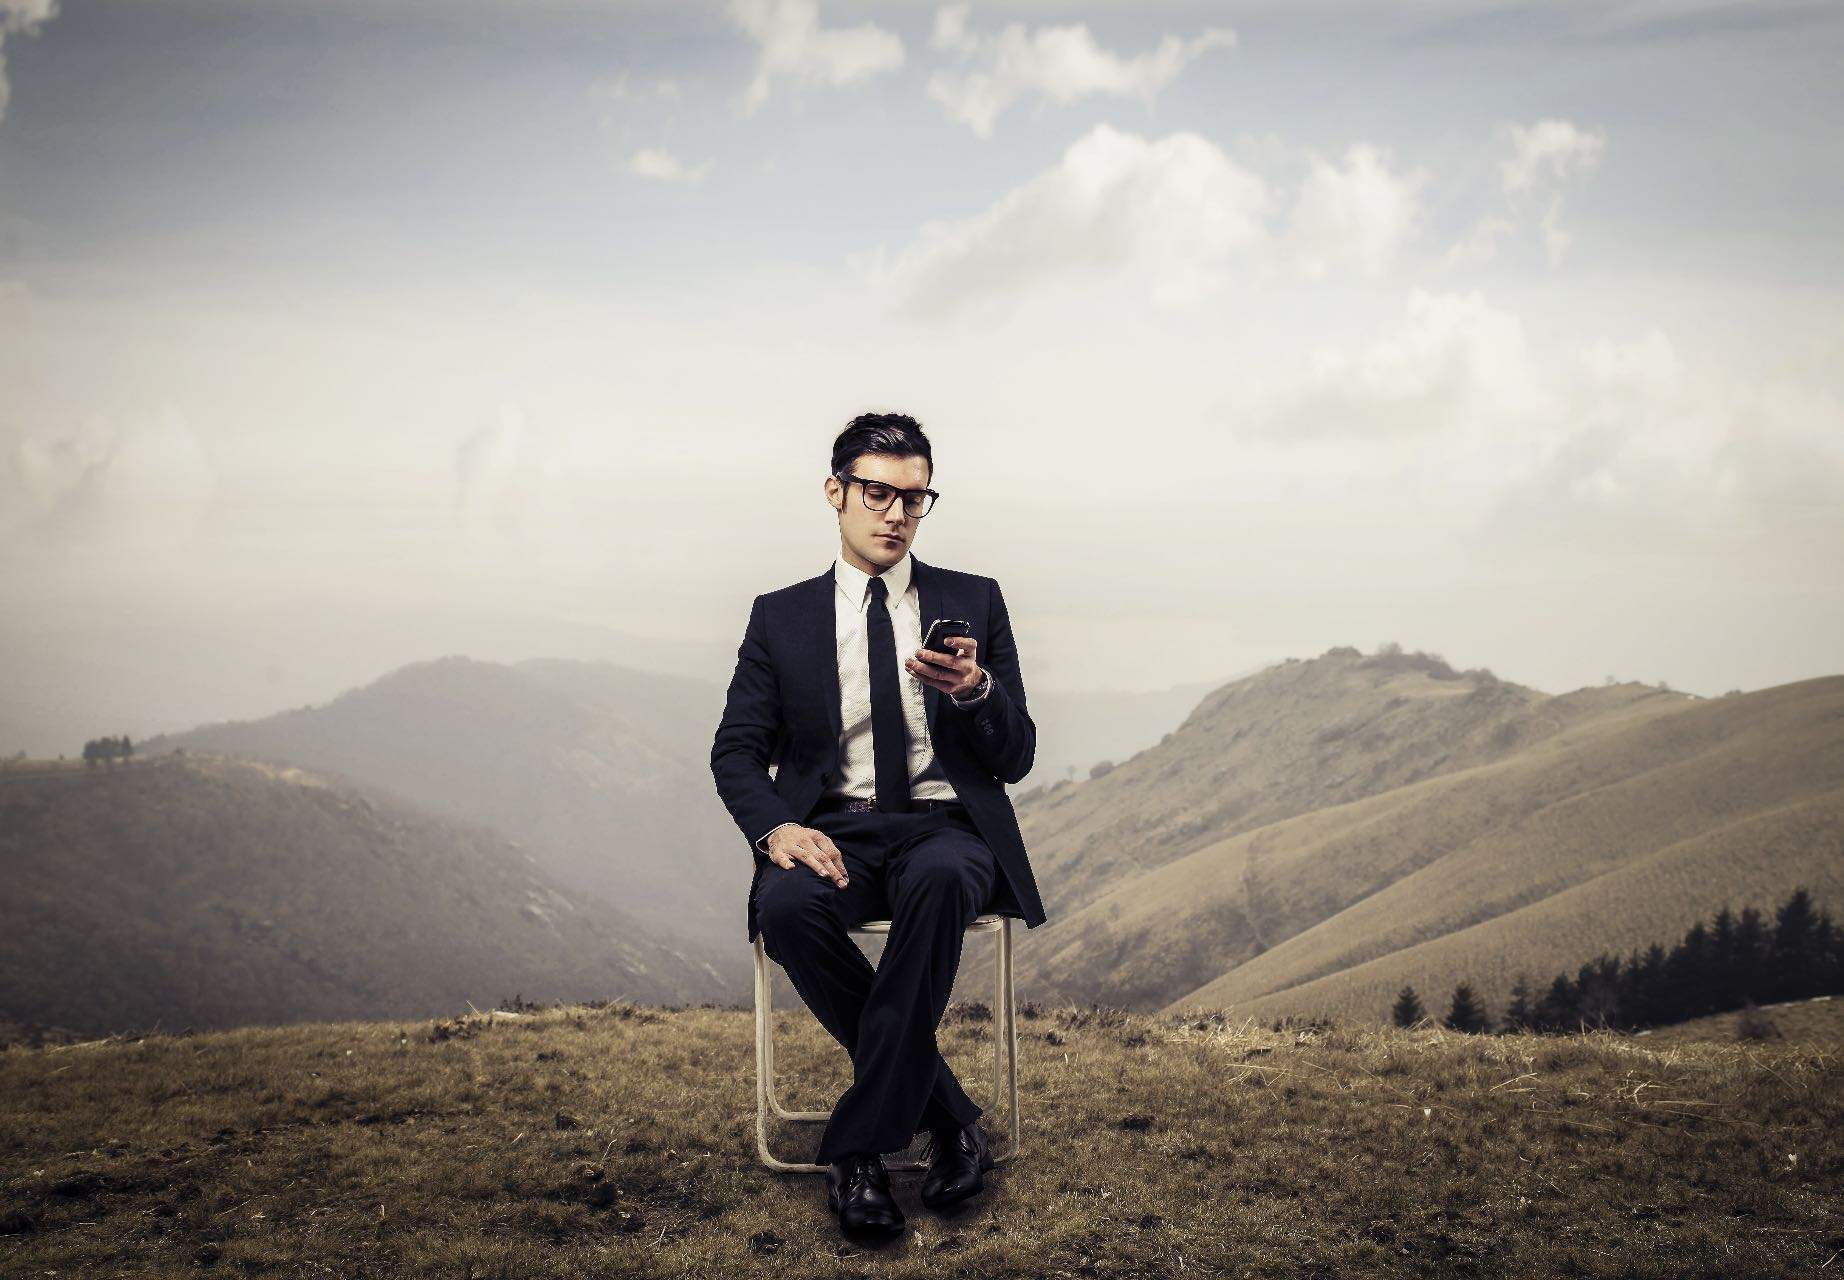 Business Man Using Phone on Mountain